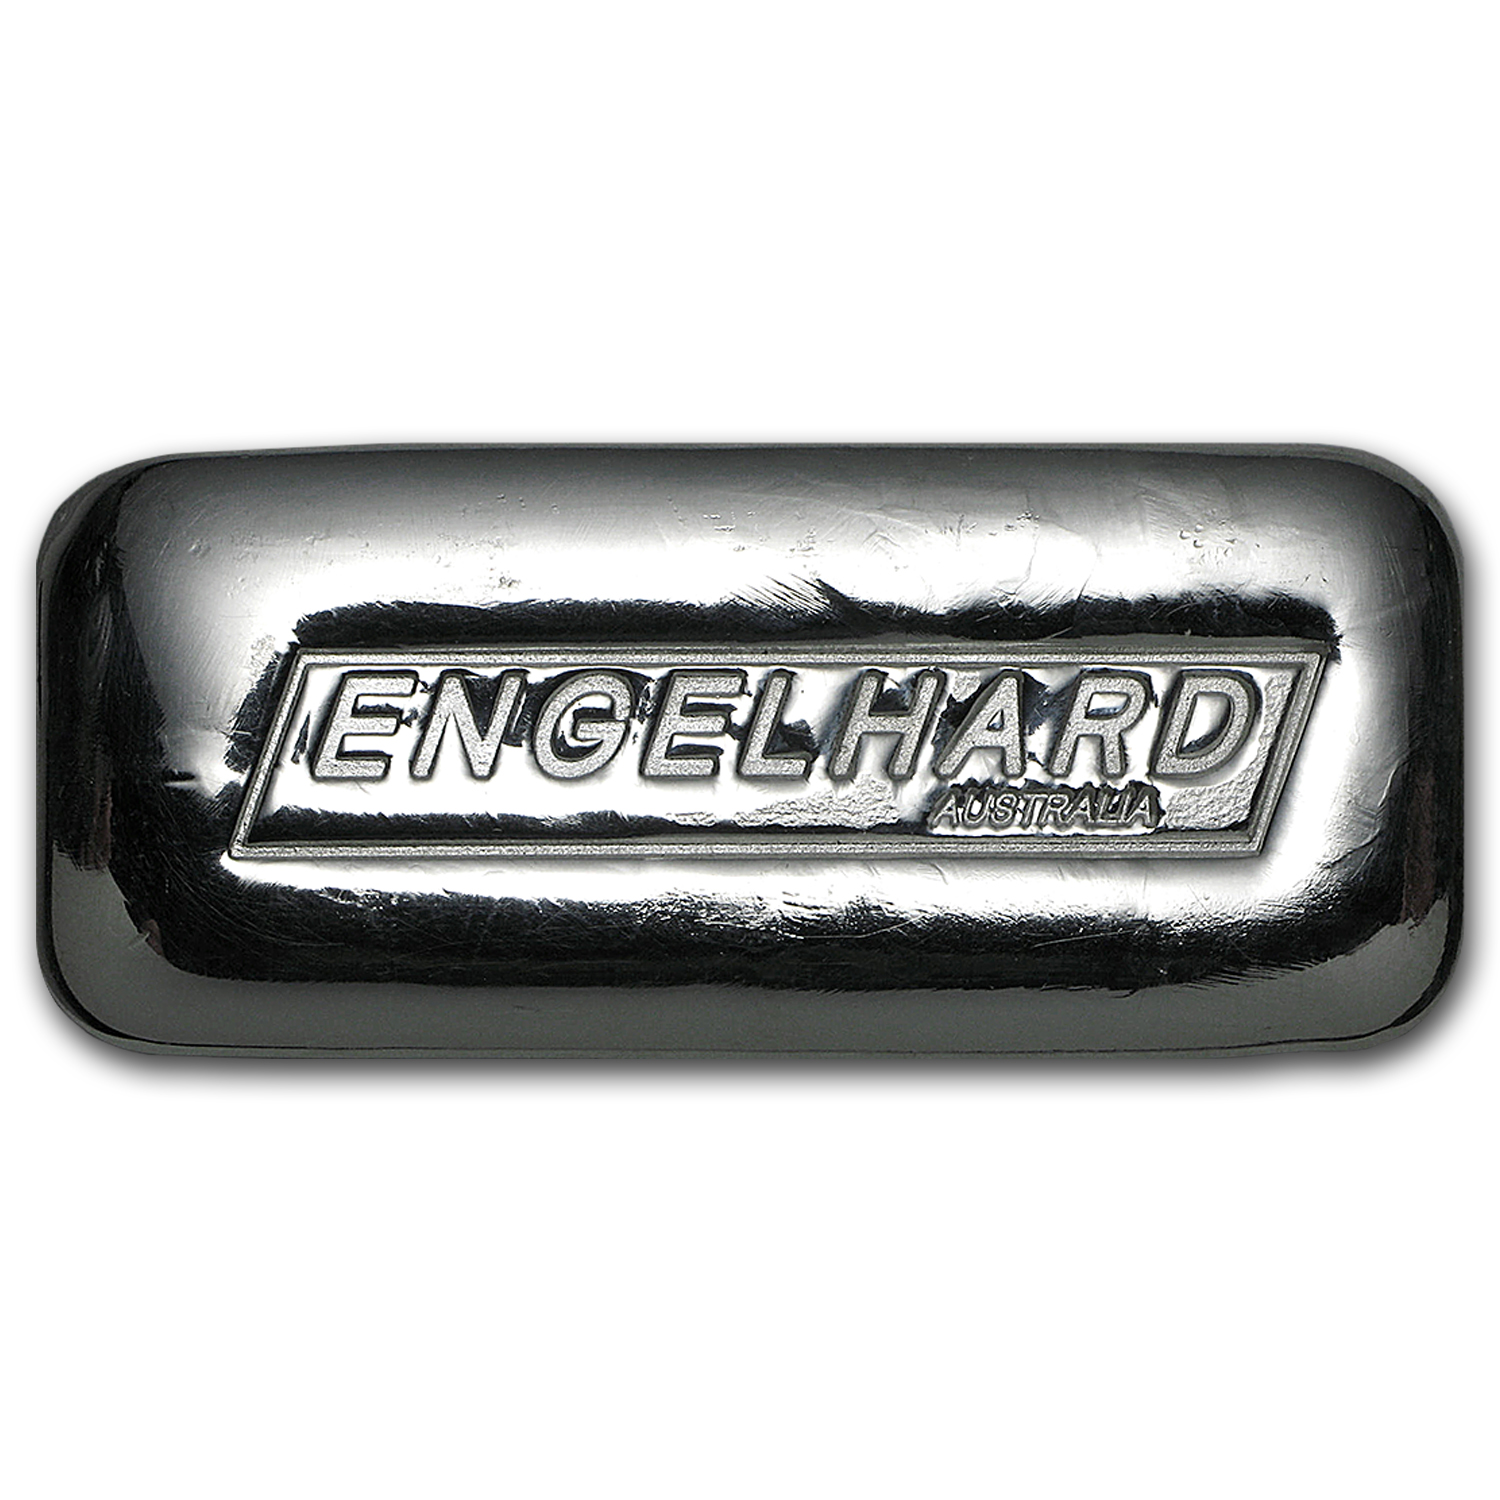 5 oz Silver Bar - Engelhard-Australia (Cast, New)